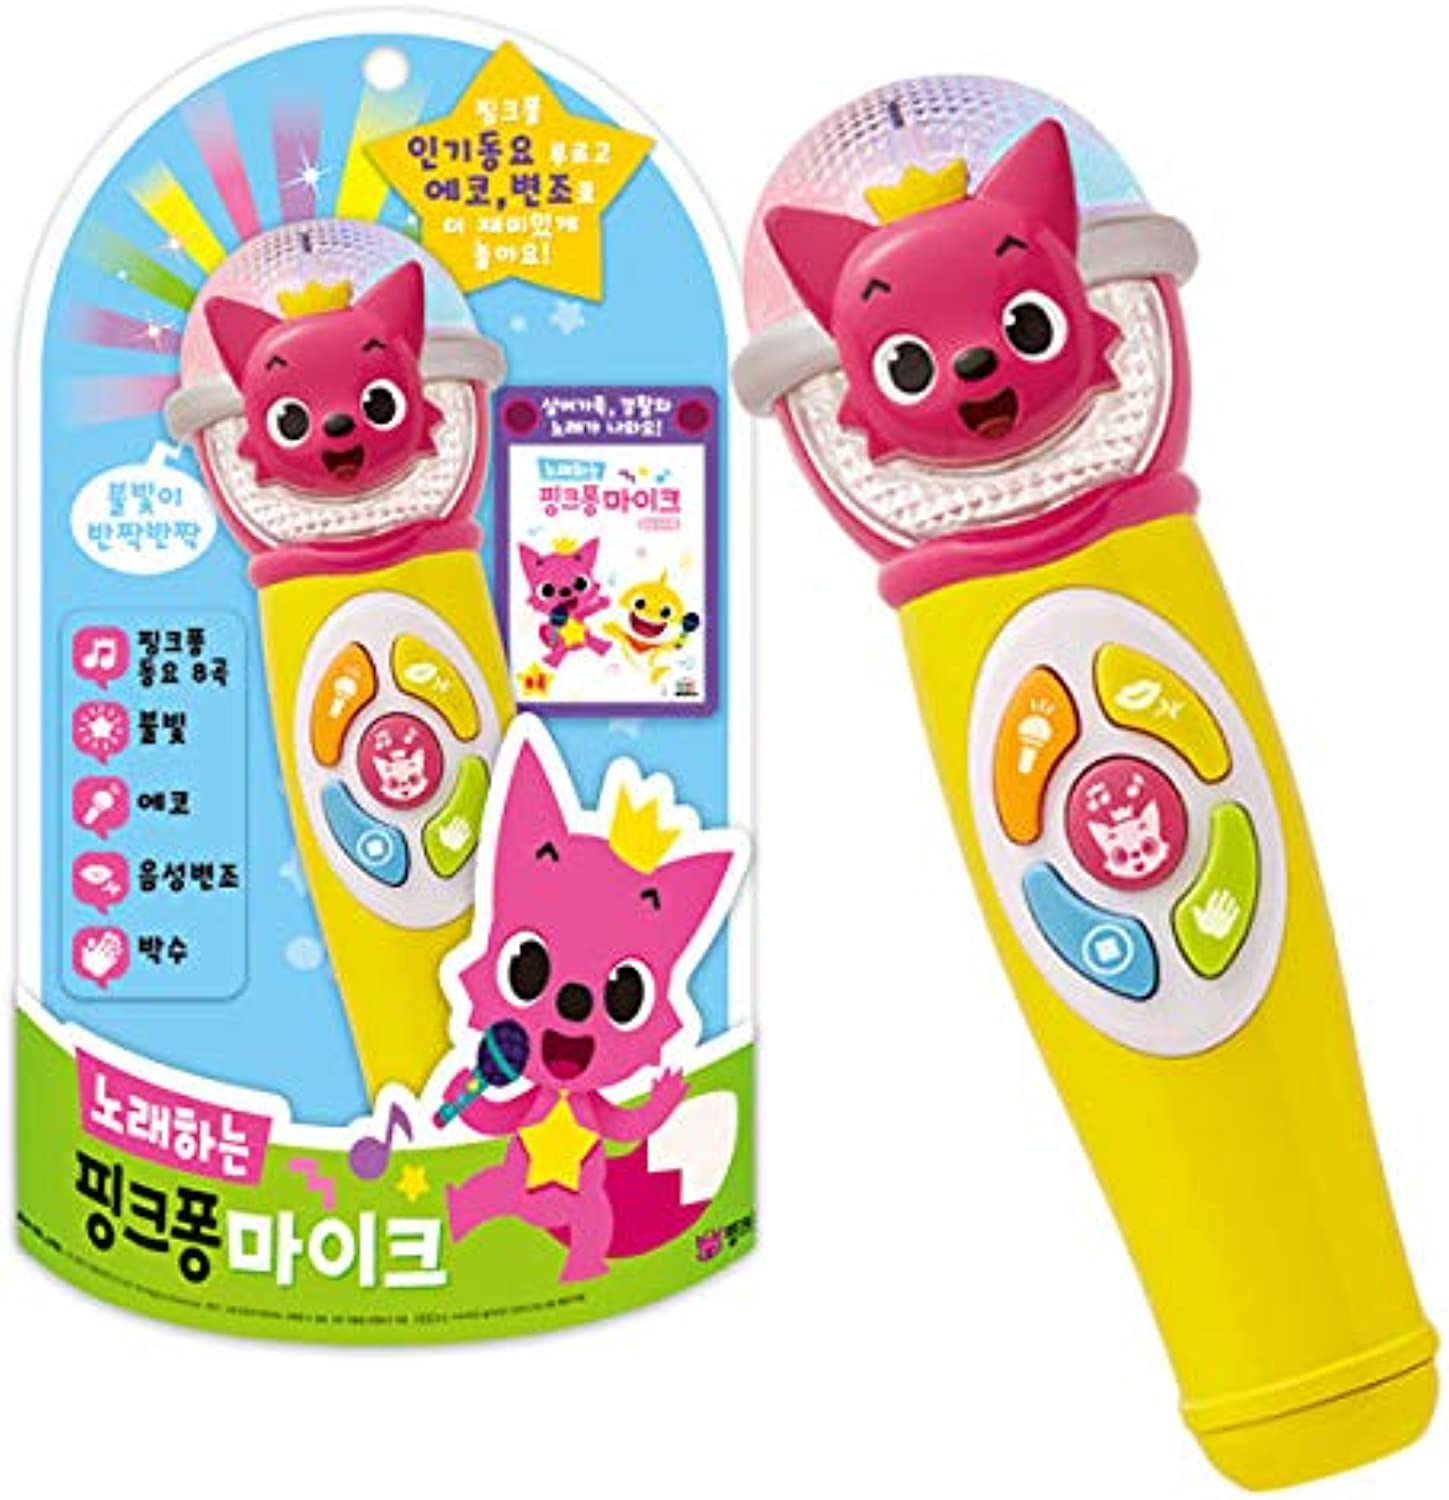 Mimiworld Pinkfong Singing Pinkfong Microphone Toy